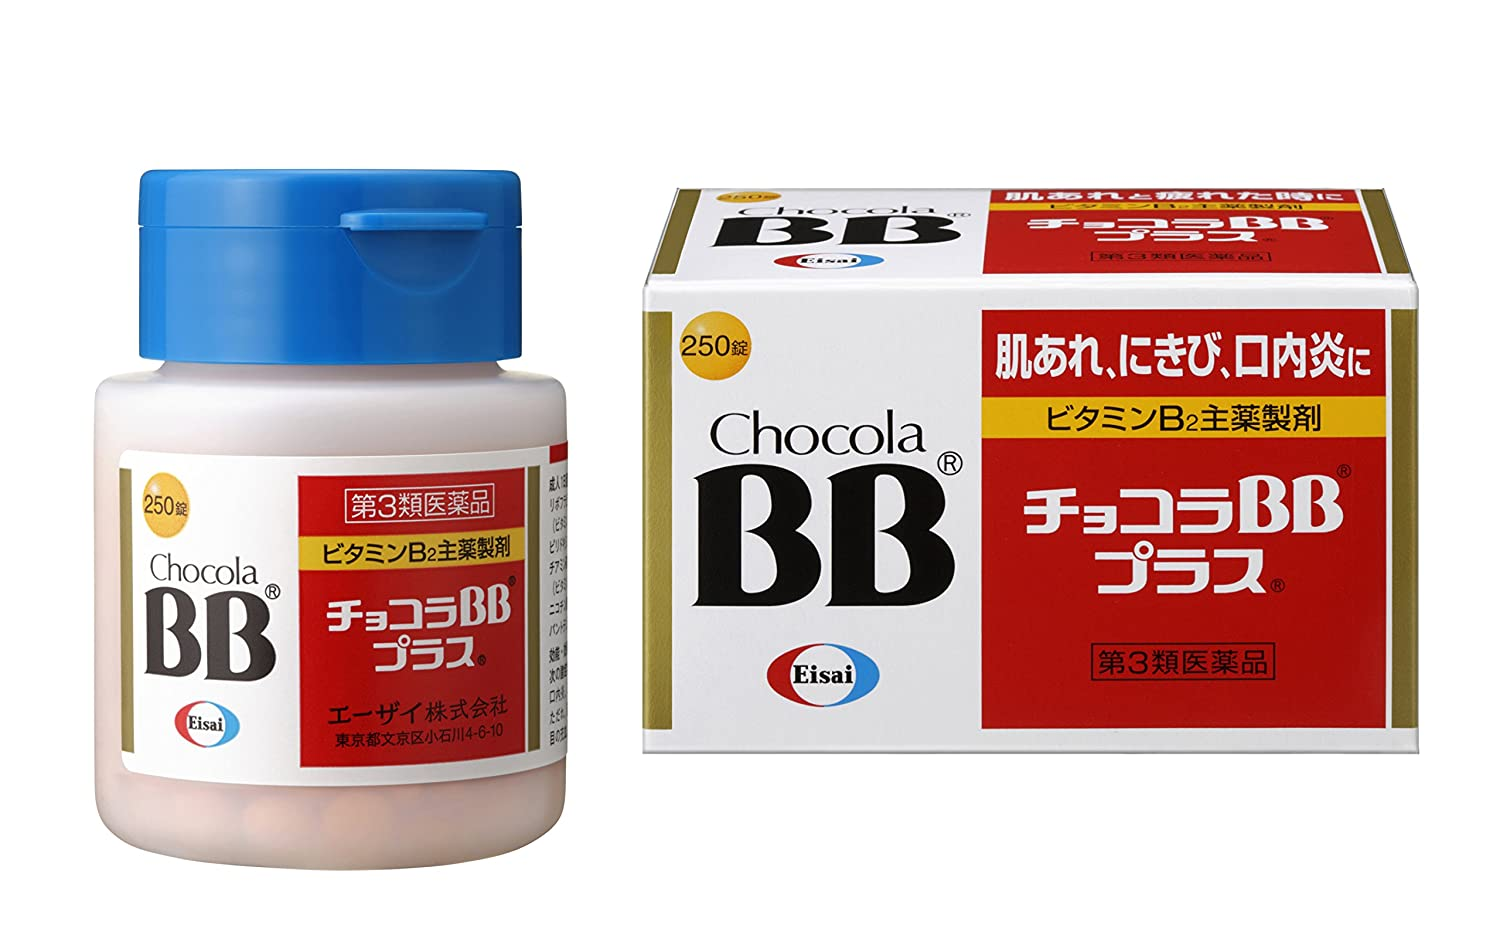 Chocala BB plus Vitamin B2 Inventory cleanup selling sale At the price canker pimples tablets sore 250